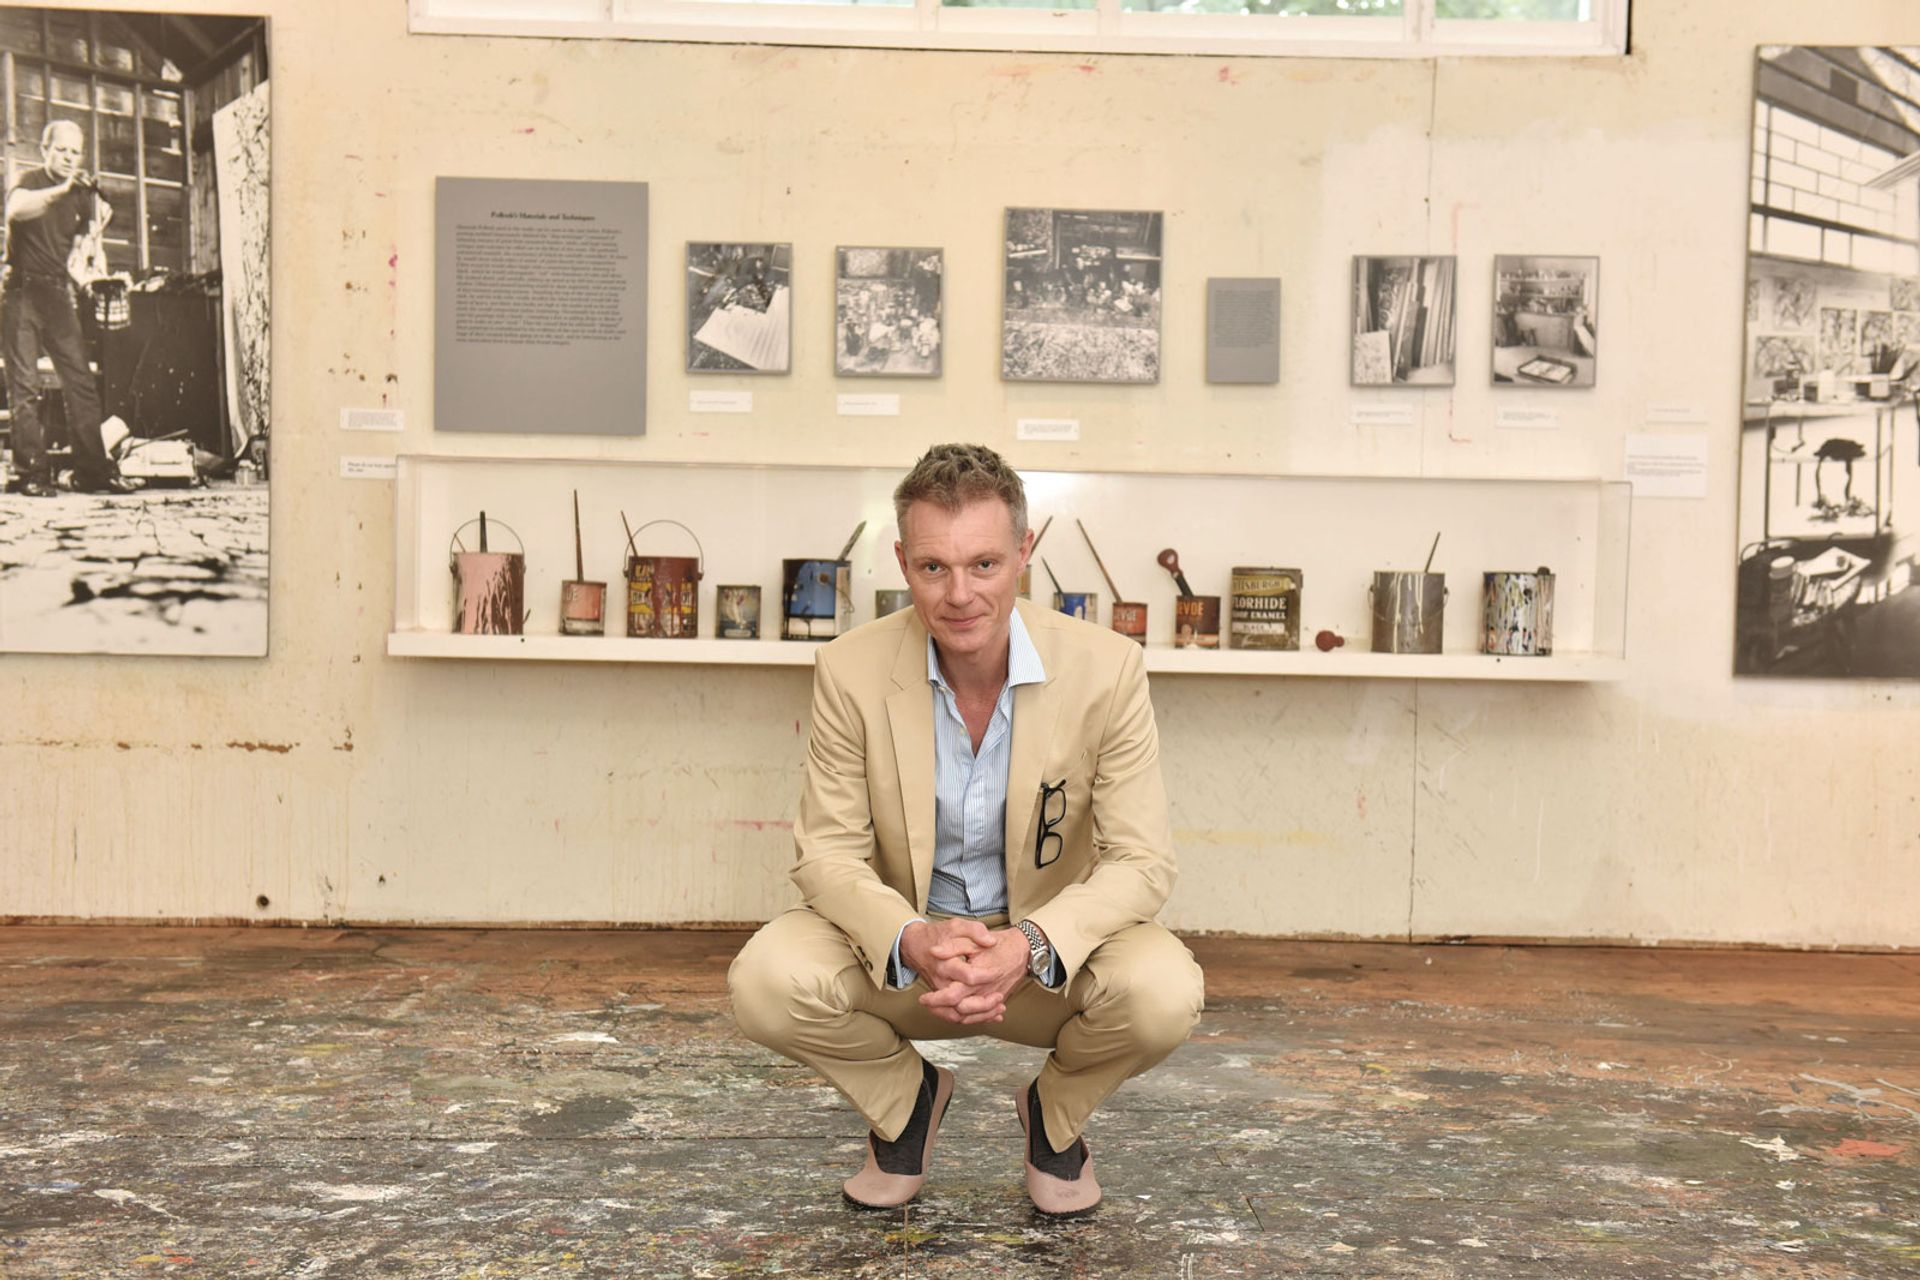 Before serving as the Royal Academy's artistic director, Tim Marlow, who is also a broadcaster, spent a decade at White Cube © Jared Siskin/Patrick McMullan via Getty Images